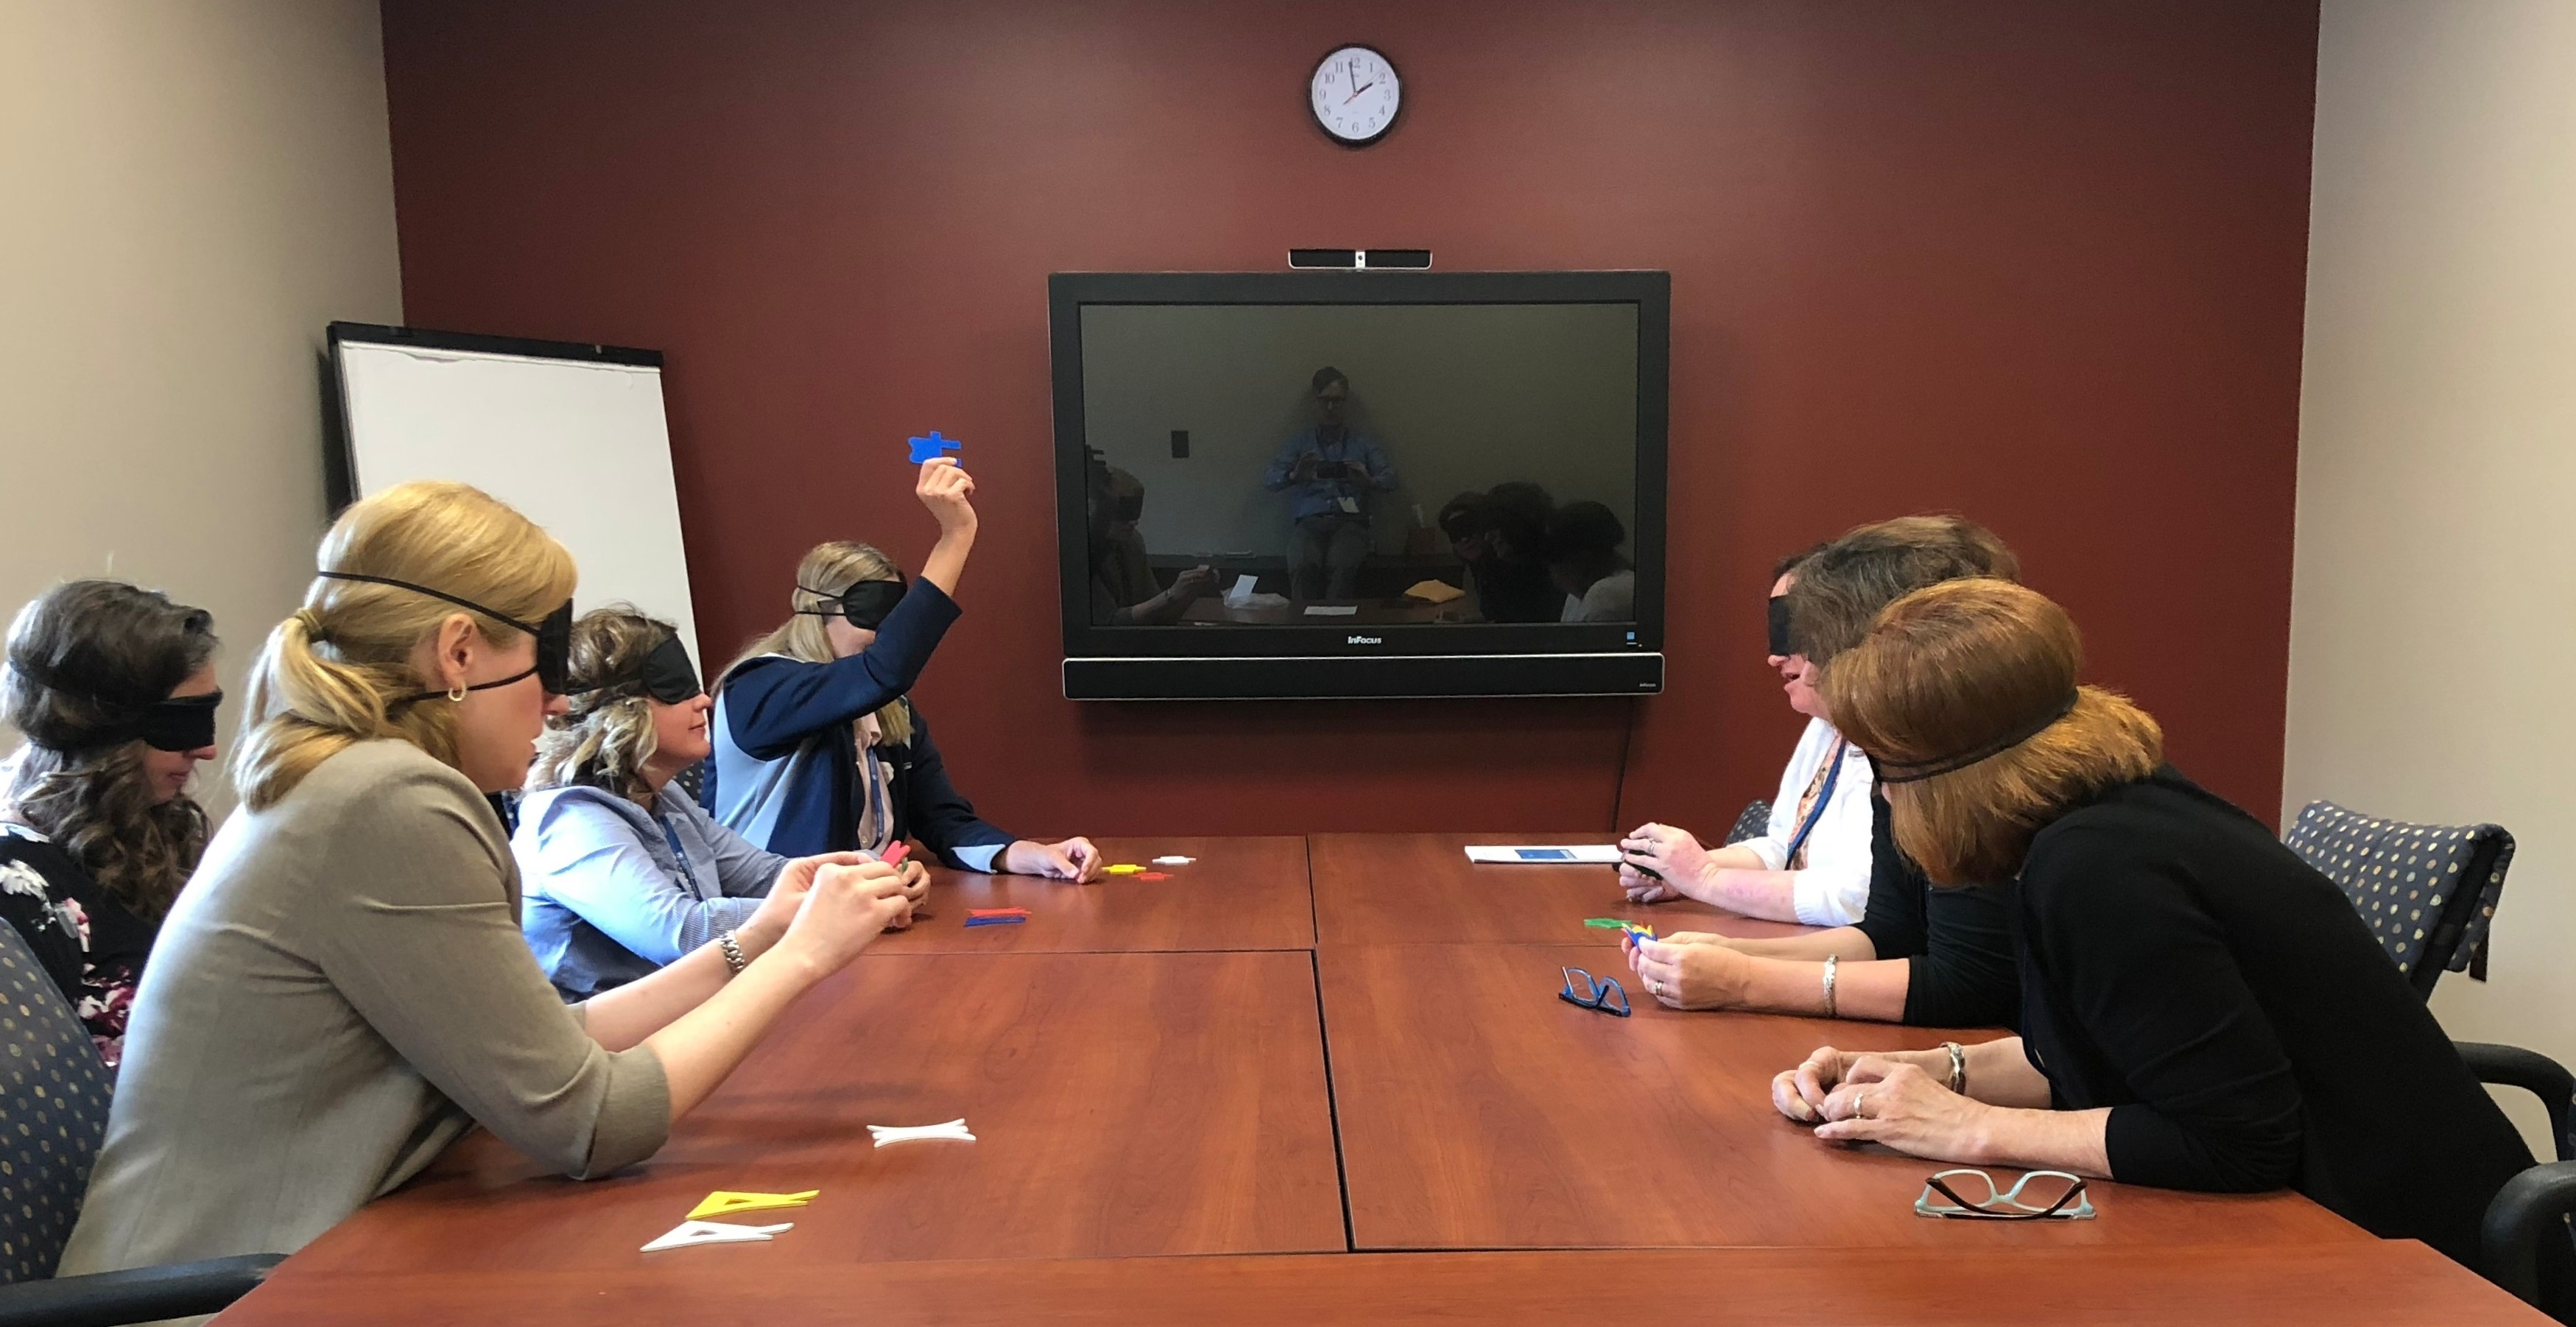 Six Leadership Academy attendees sit across from each other at a conference table, blindfolded, as they participate in an interactive session designed to promote teamwork. One blindfolded woman holds a piece of paper in the air as the others lean forward to hear her speak. A large screen TV and a whiteboard can be seen in the room.